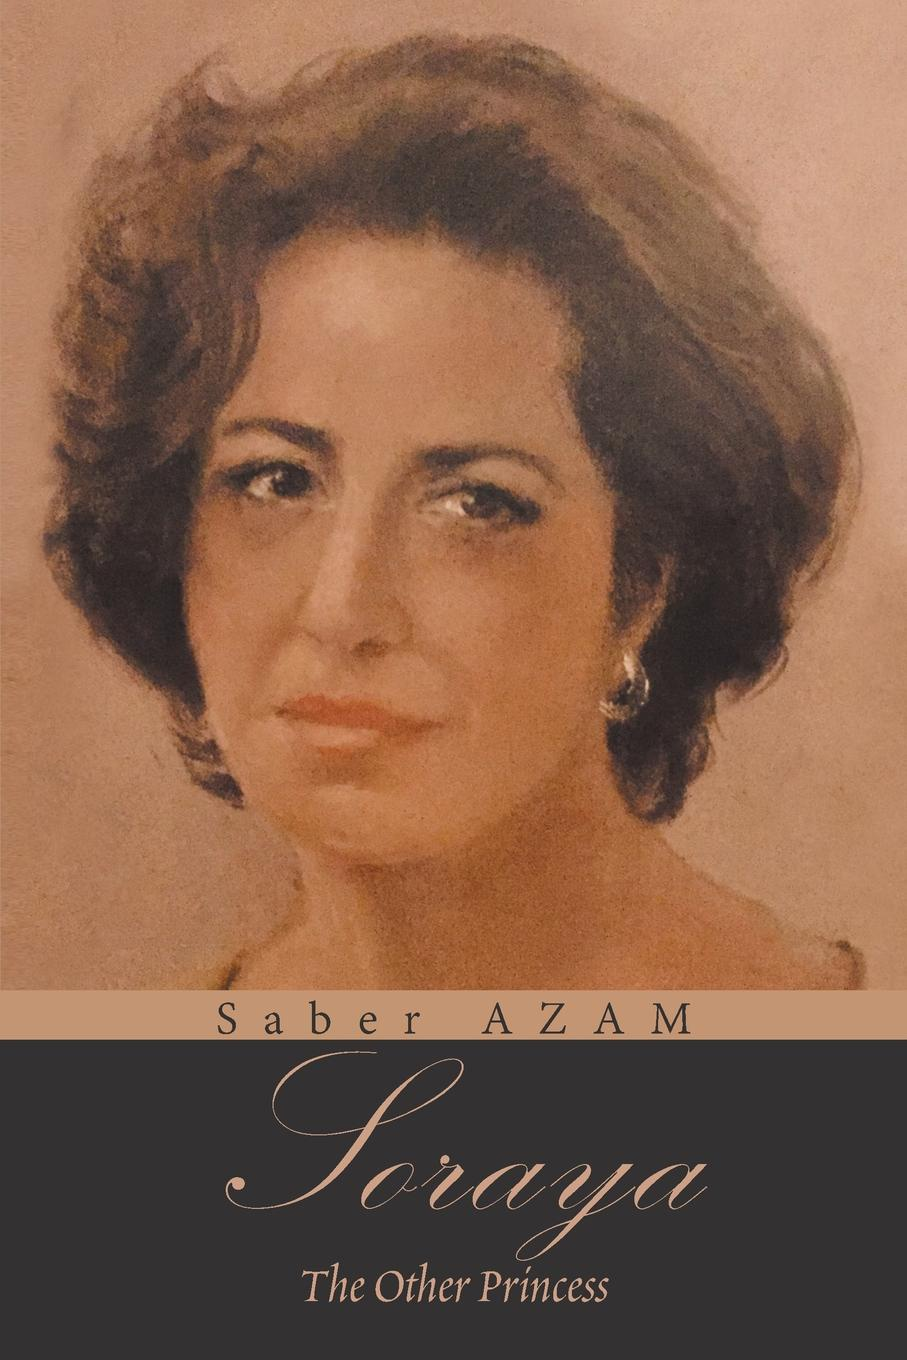 Saber Azam Soraya. The Other Princess the heart of the country